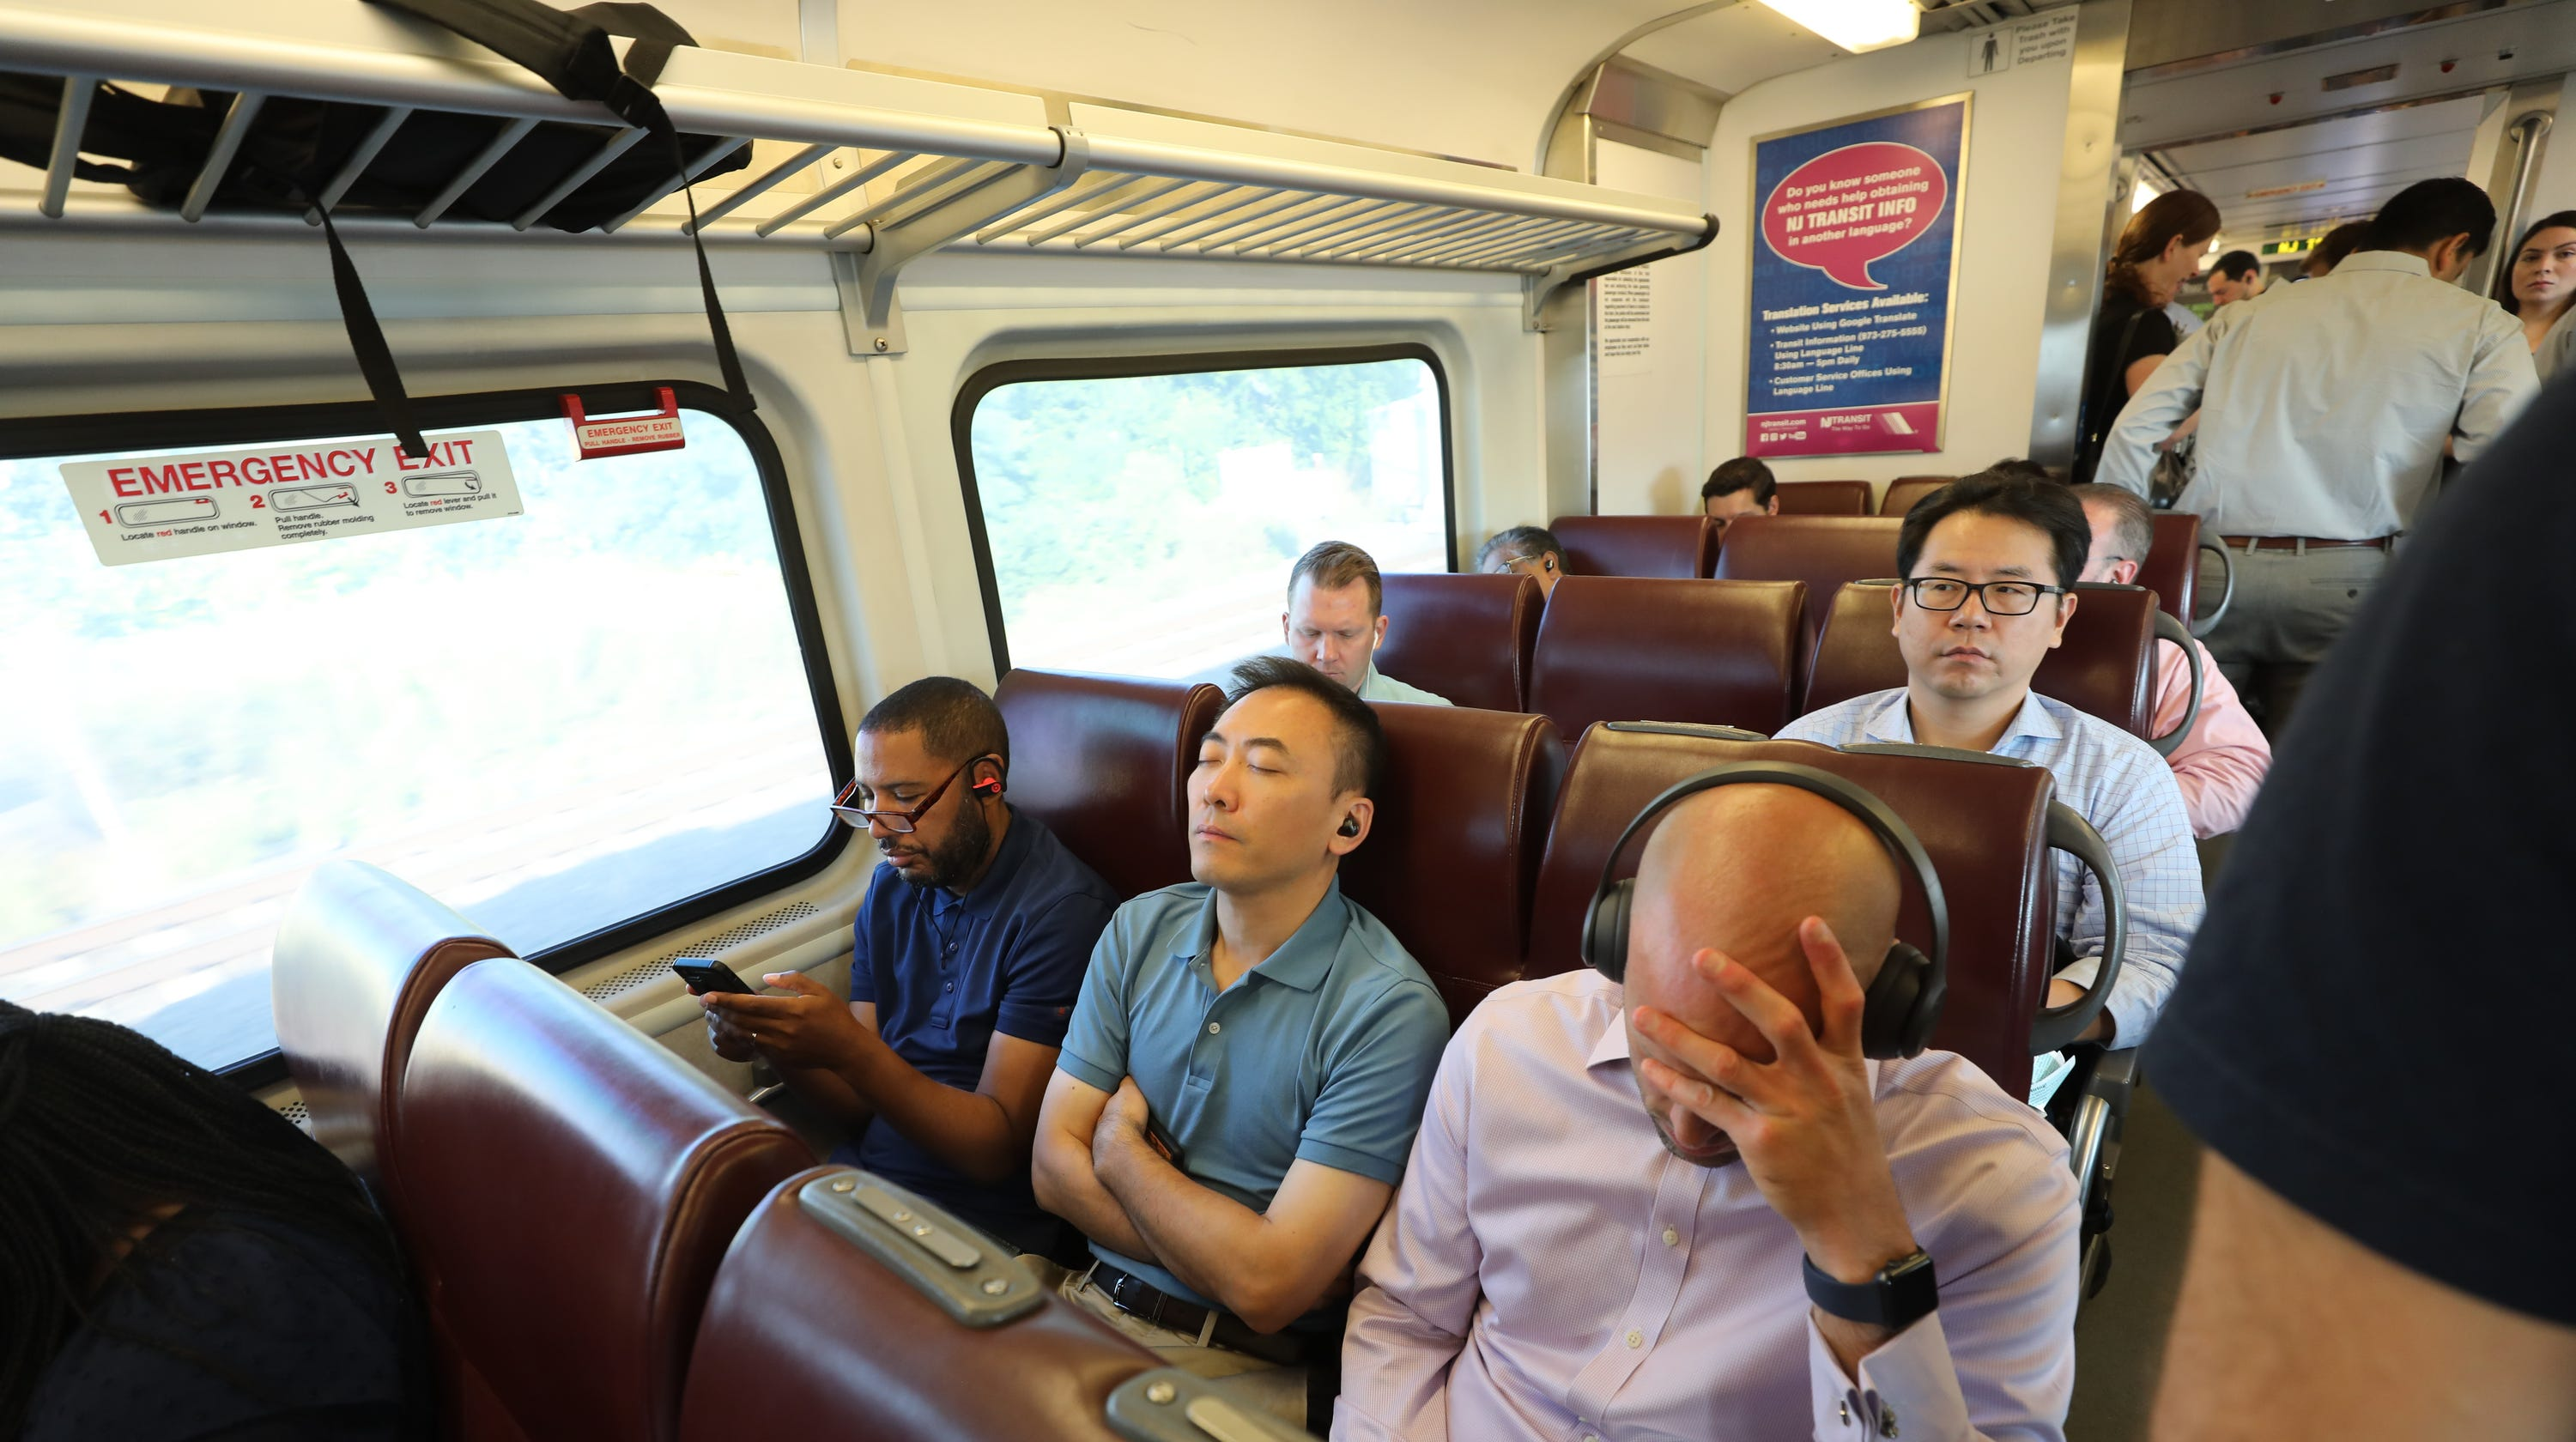 More NJ Transit service cuts coming because of positive